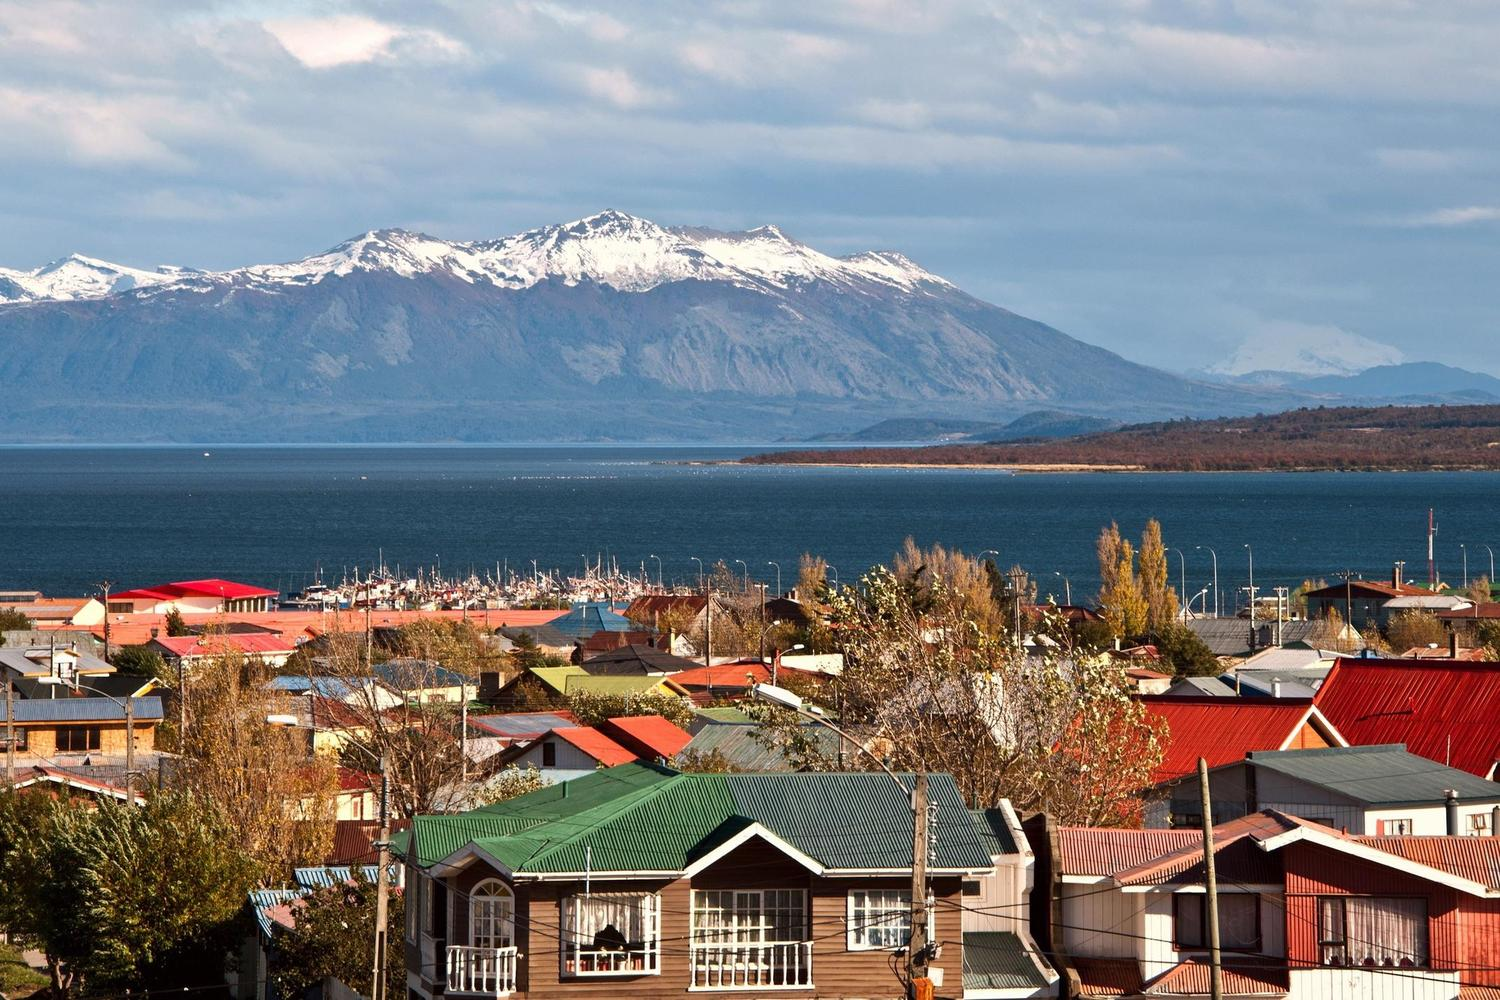 A bright day in Puerto Natales, Chile